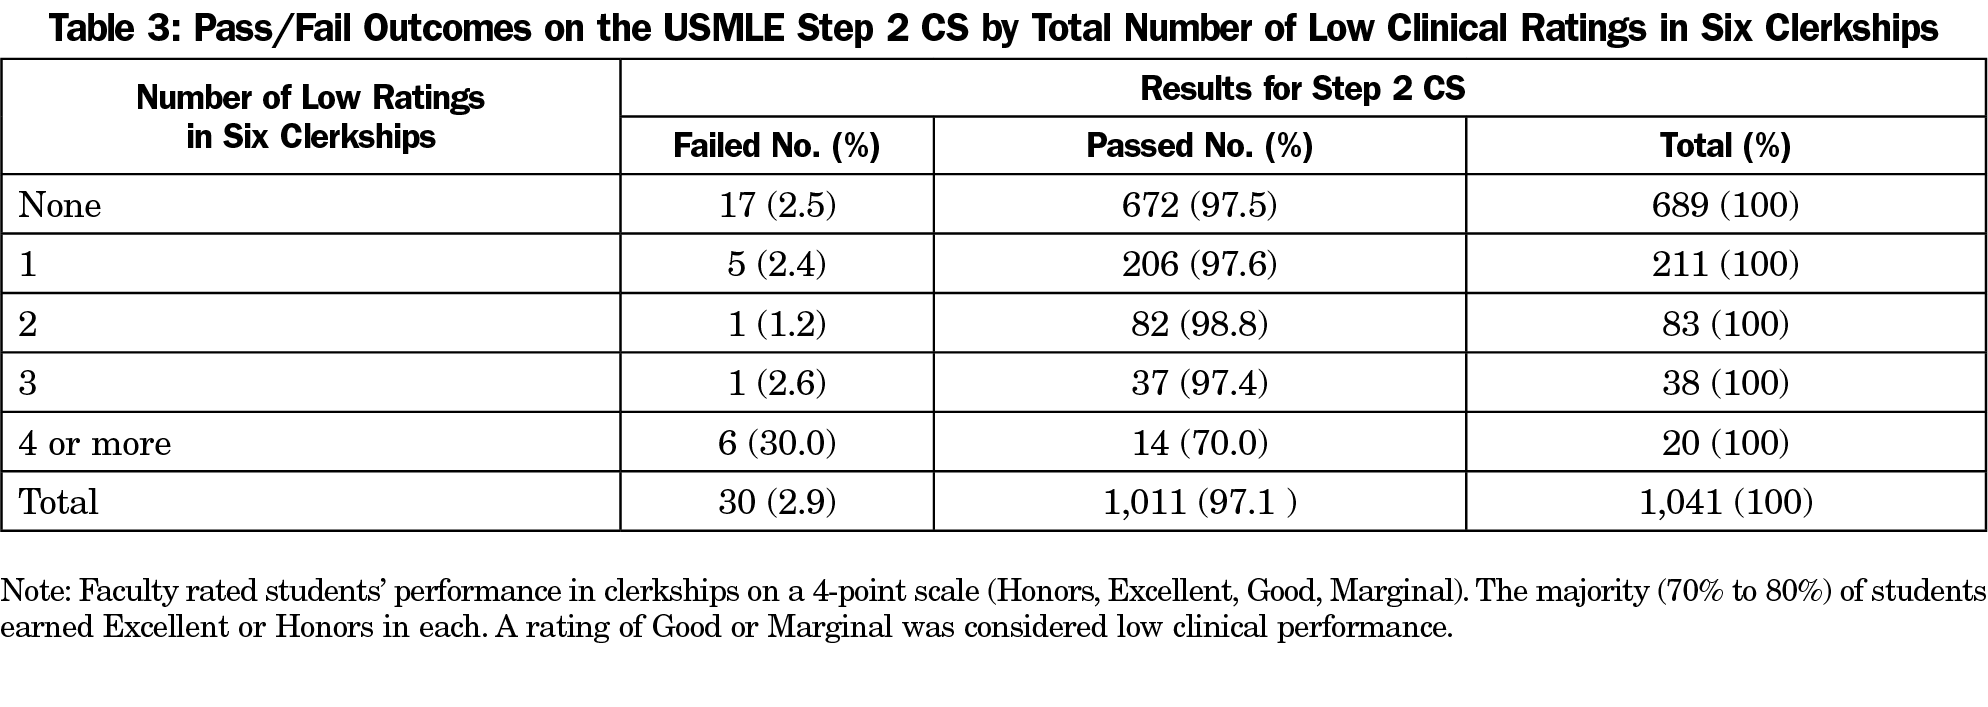 Identifying Students at Risk of Failing the USMLE Step 2